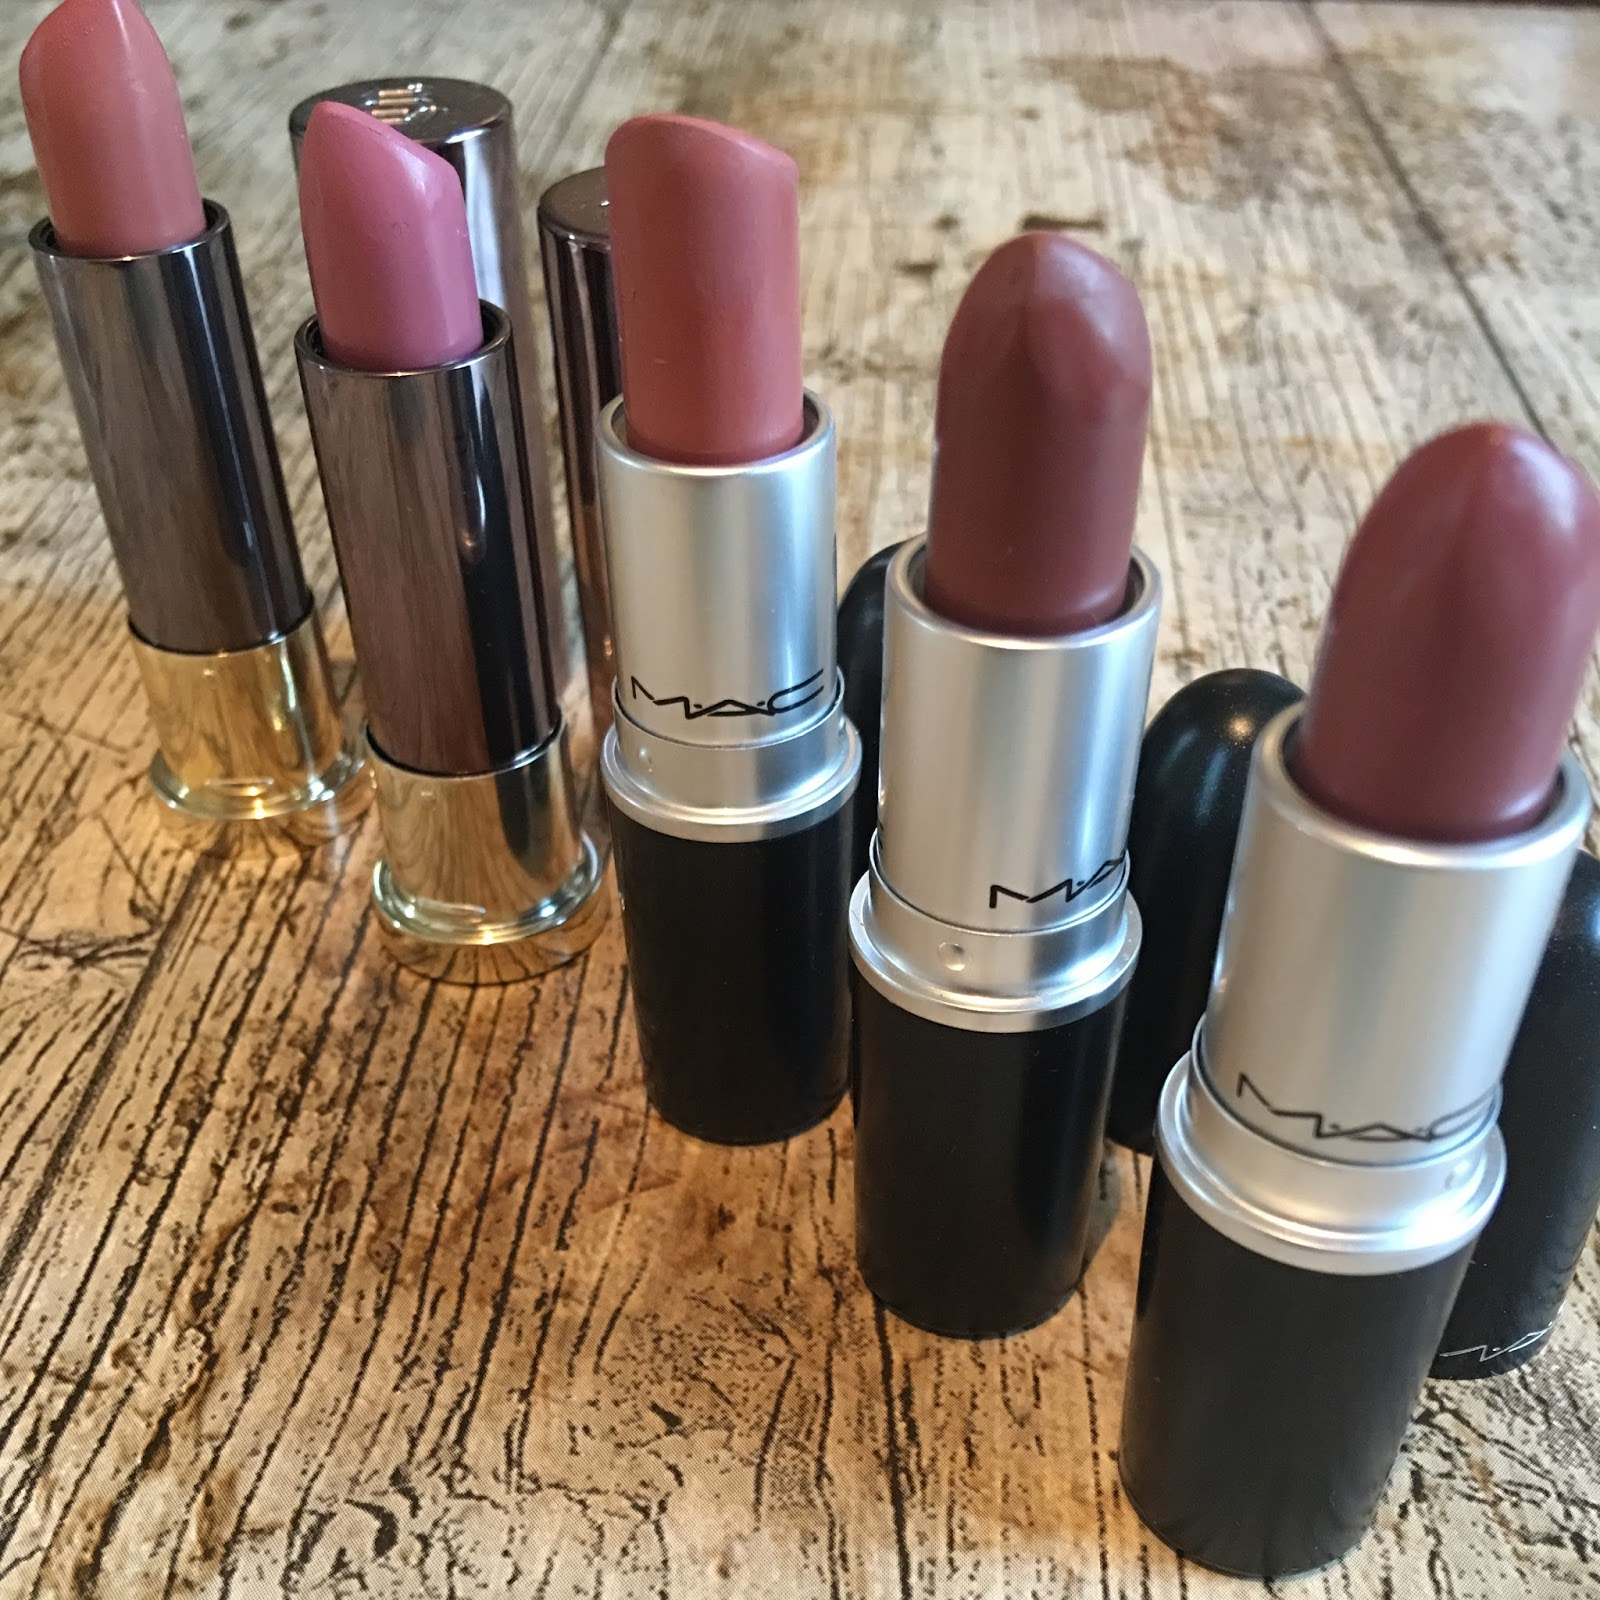 5 current go to lipsticks Mac and Urban decay